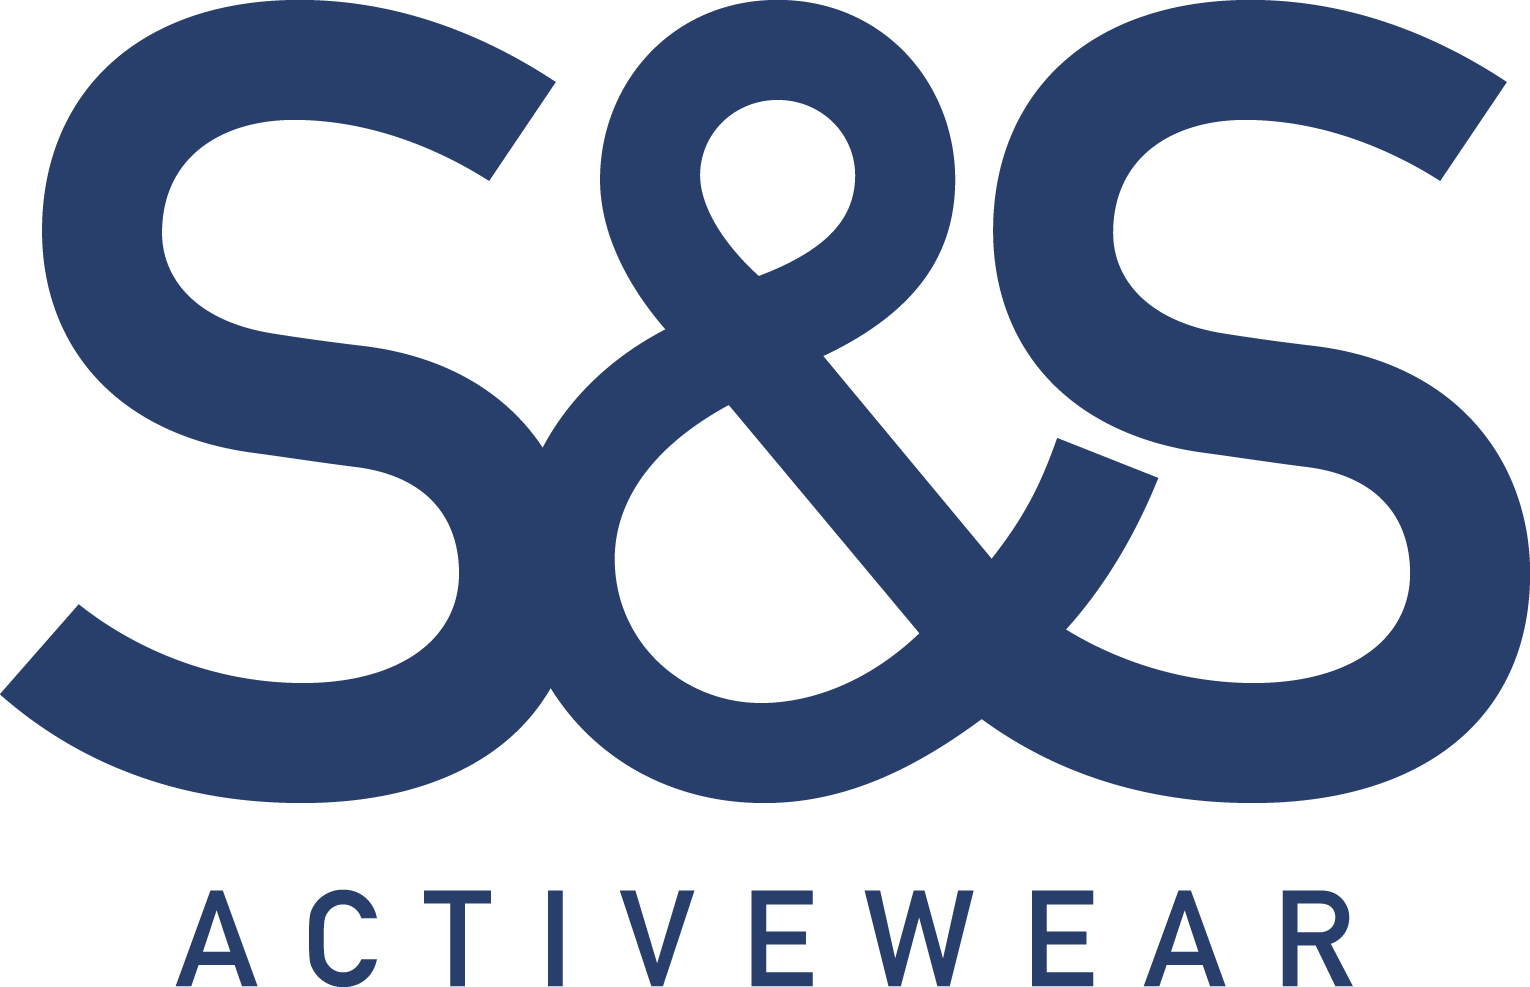 S and S activewear